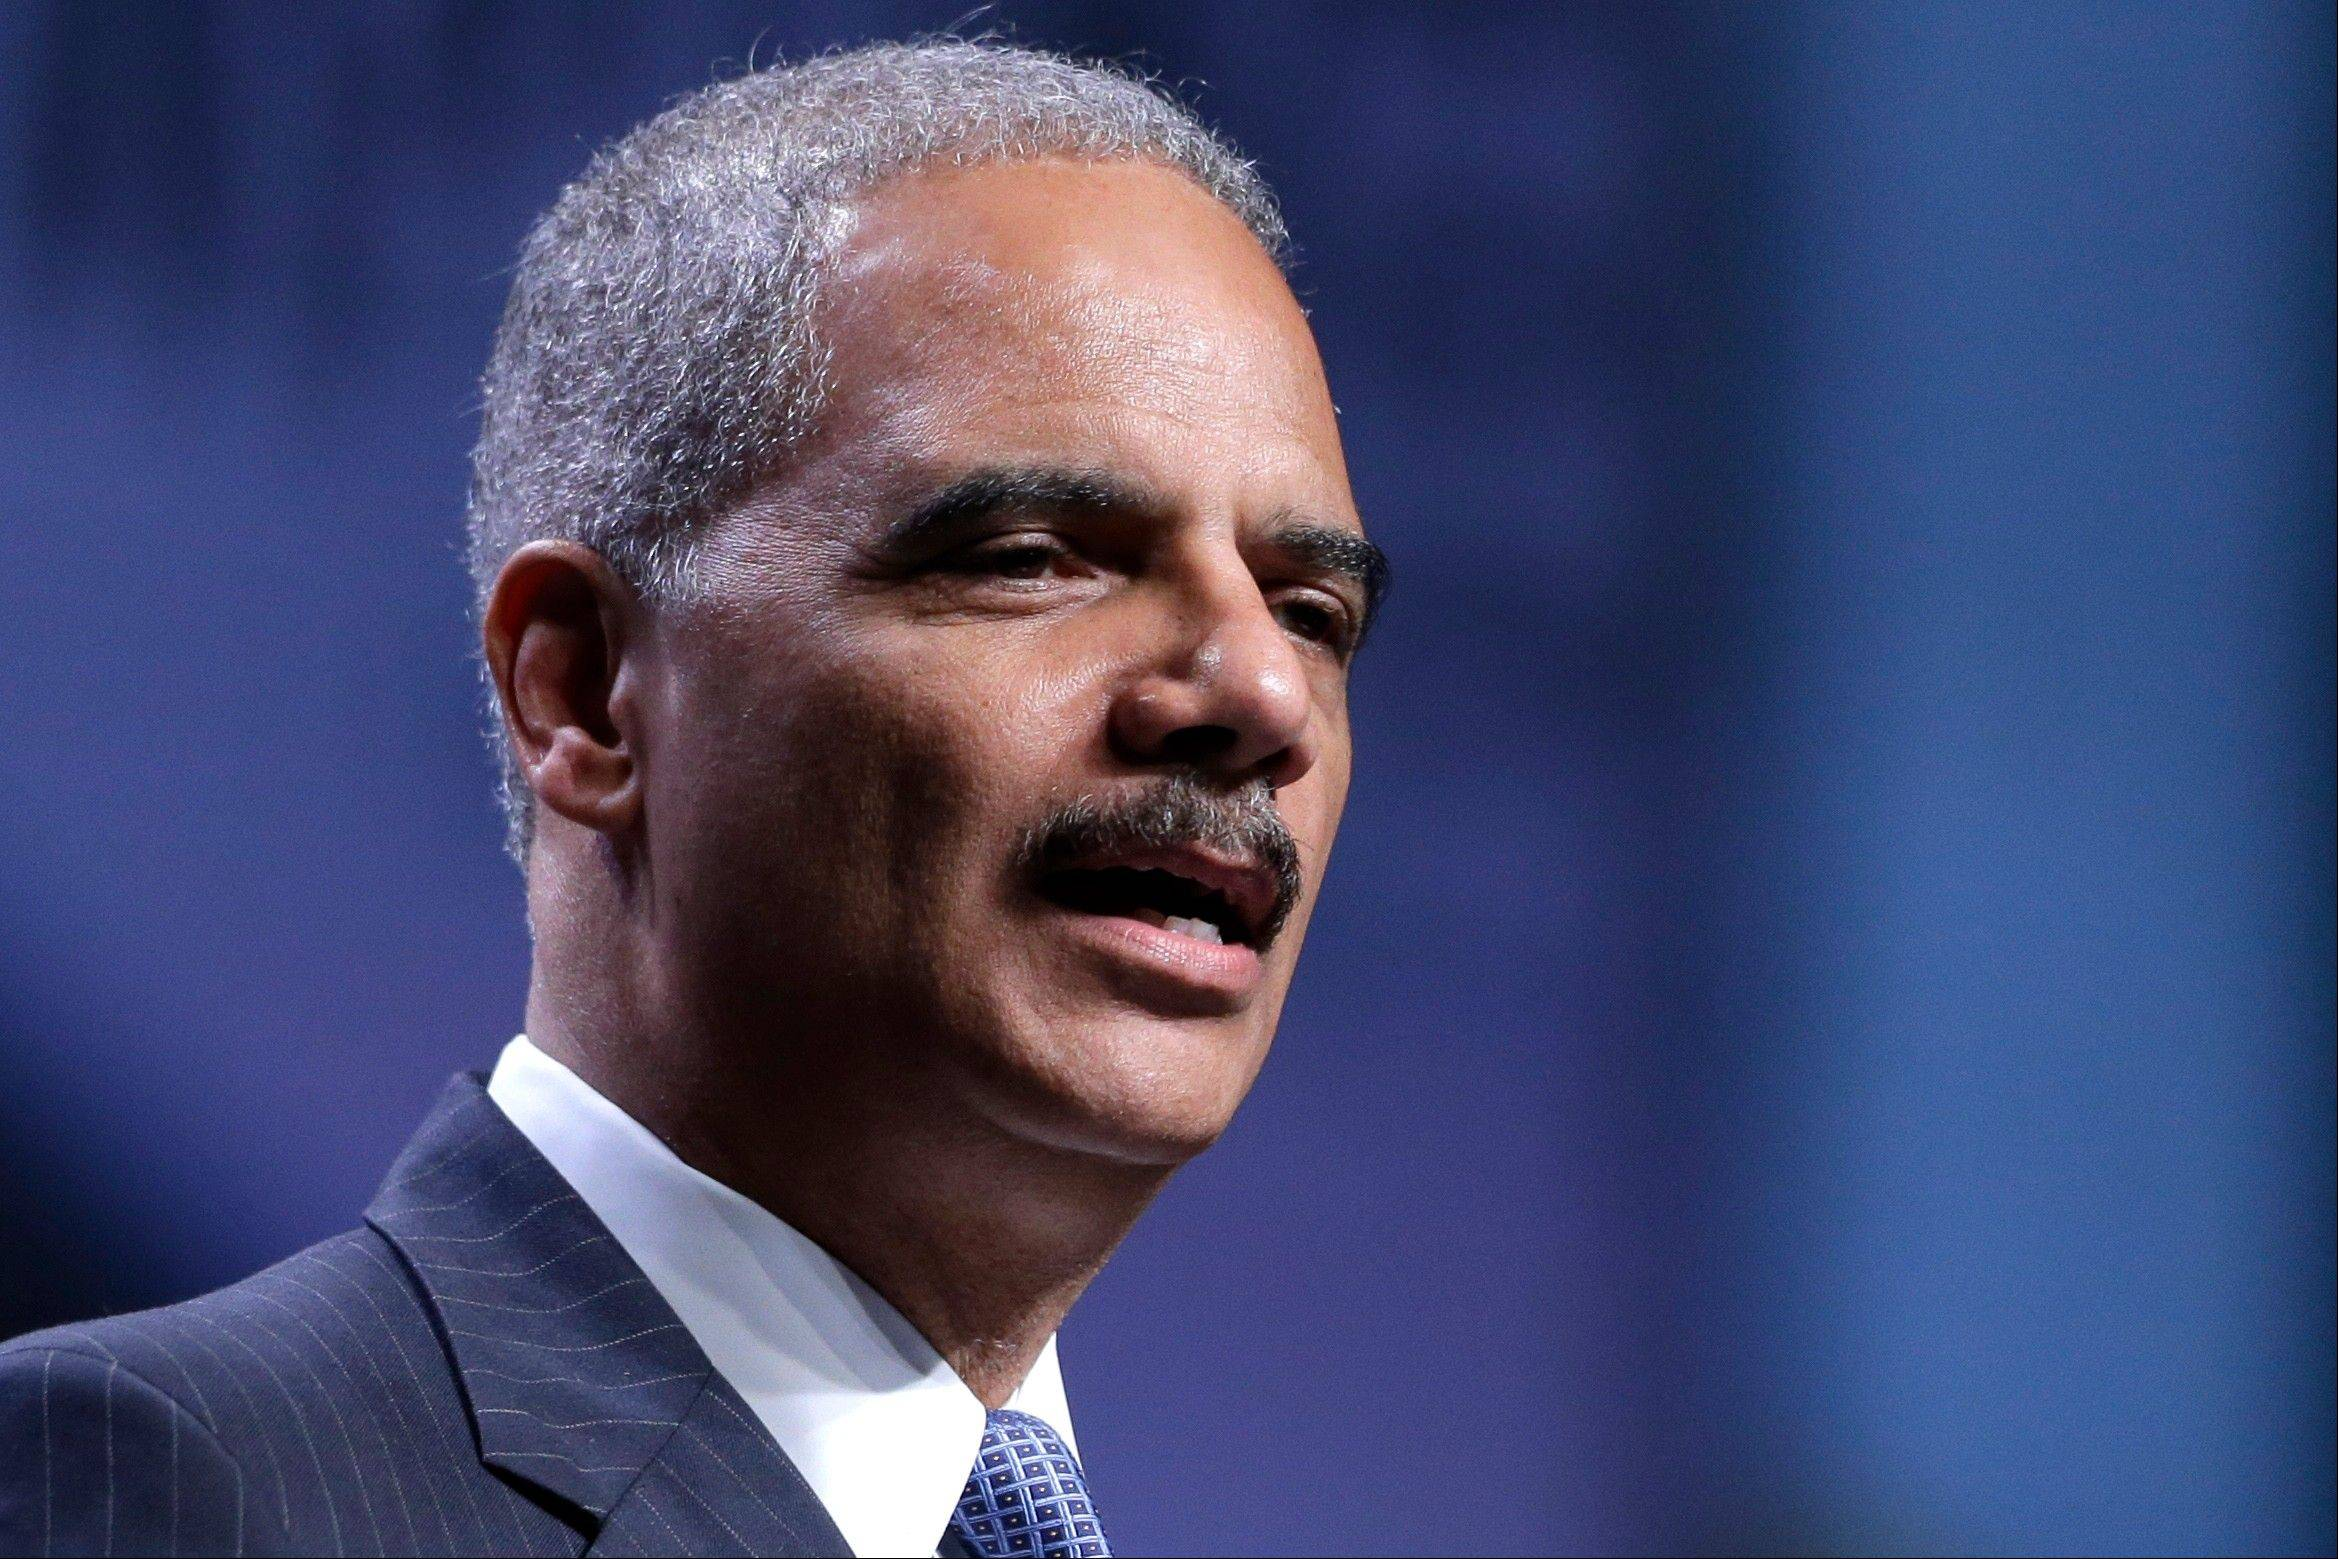 Attorney General Eric Holder speaks at the National Urban League annual conference Thursday in Philadelphia. Holder said the Justice Department is opening a new front in the battle for voting rights in response to a Supreme Court ruling that dealt a major setback to voter protections.